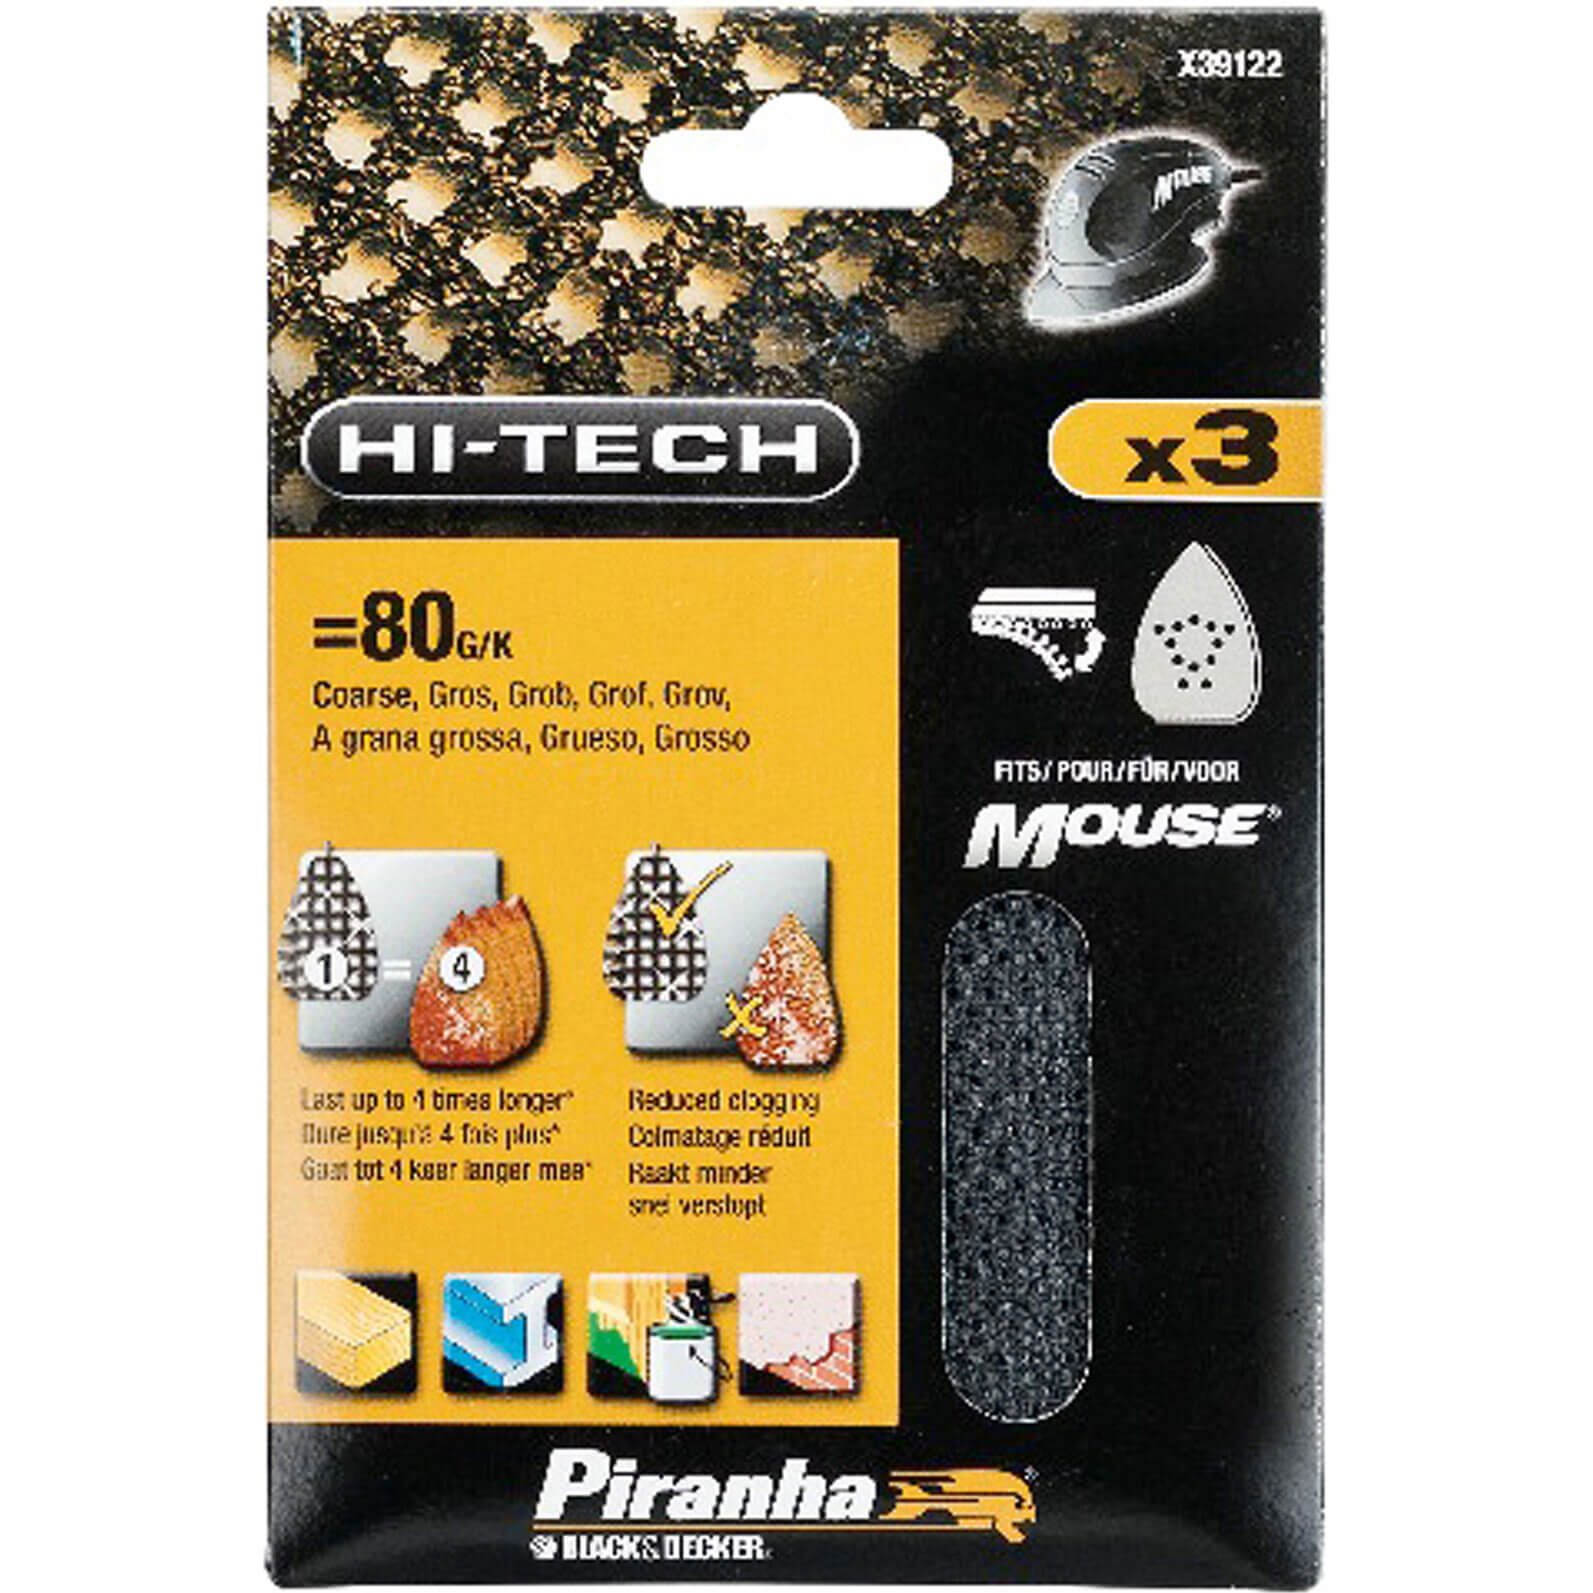 Black and Decker Piranha Hi Tech Quick Fit Mesh Mouse Sanding Sheets 240g Pack of 3